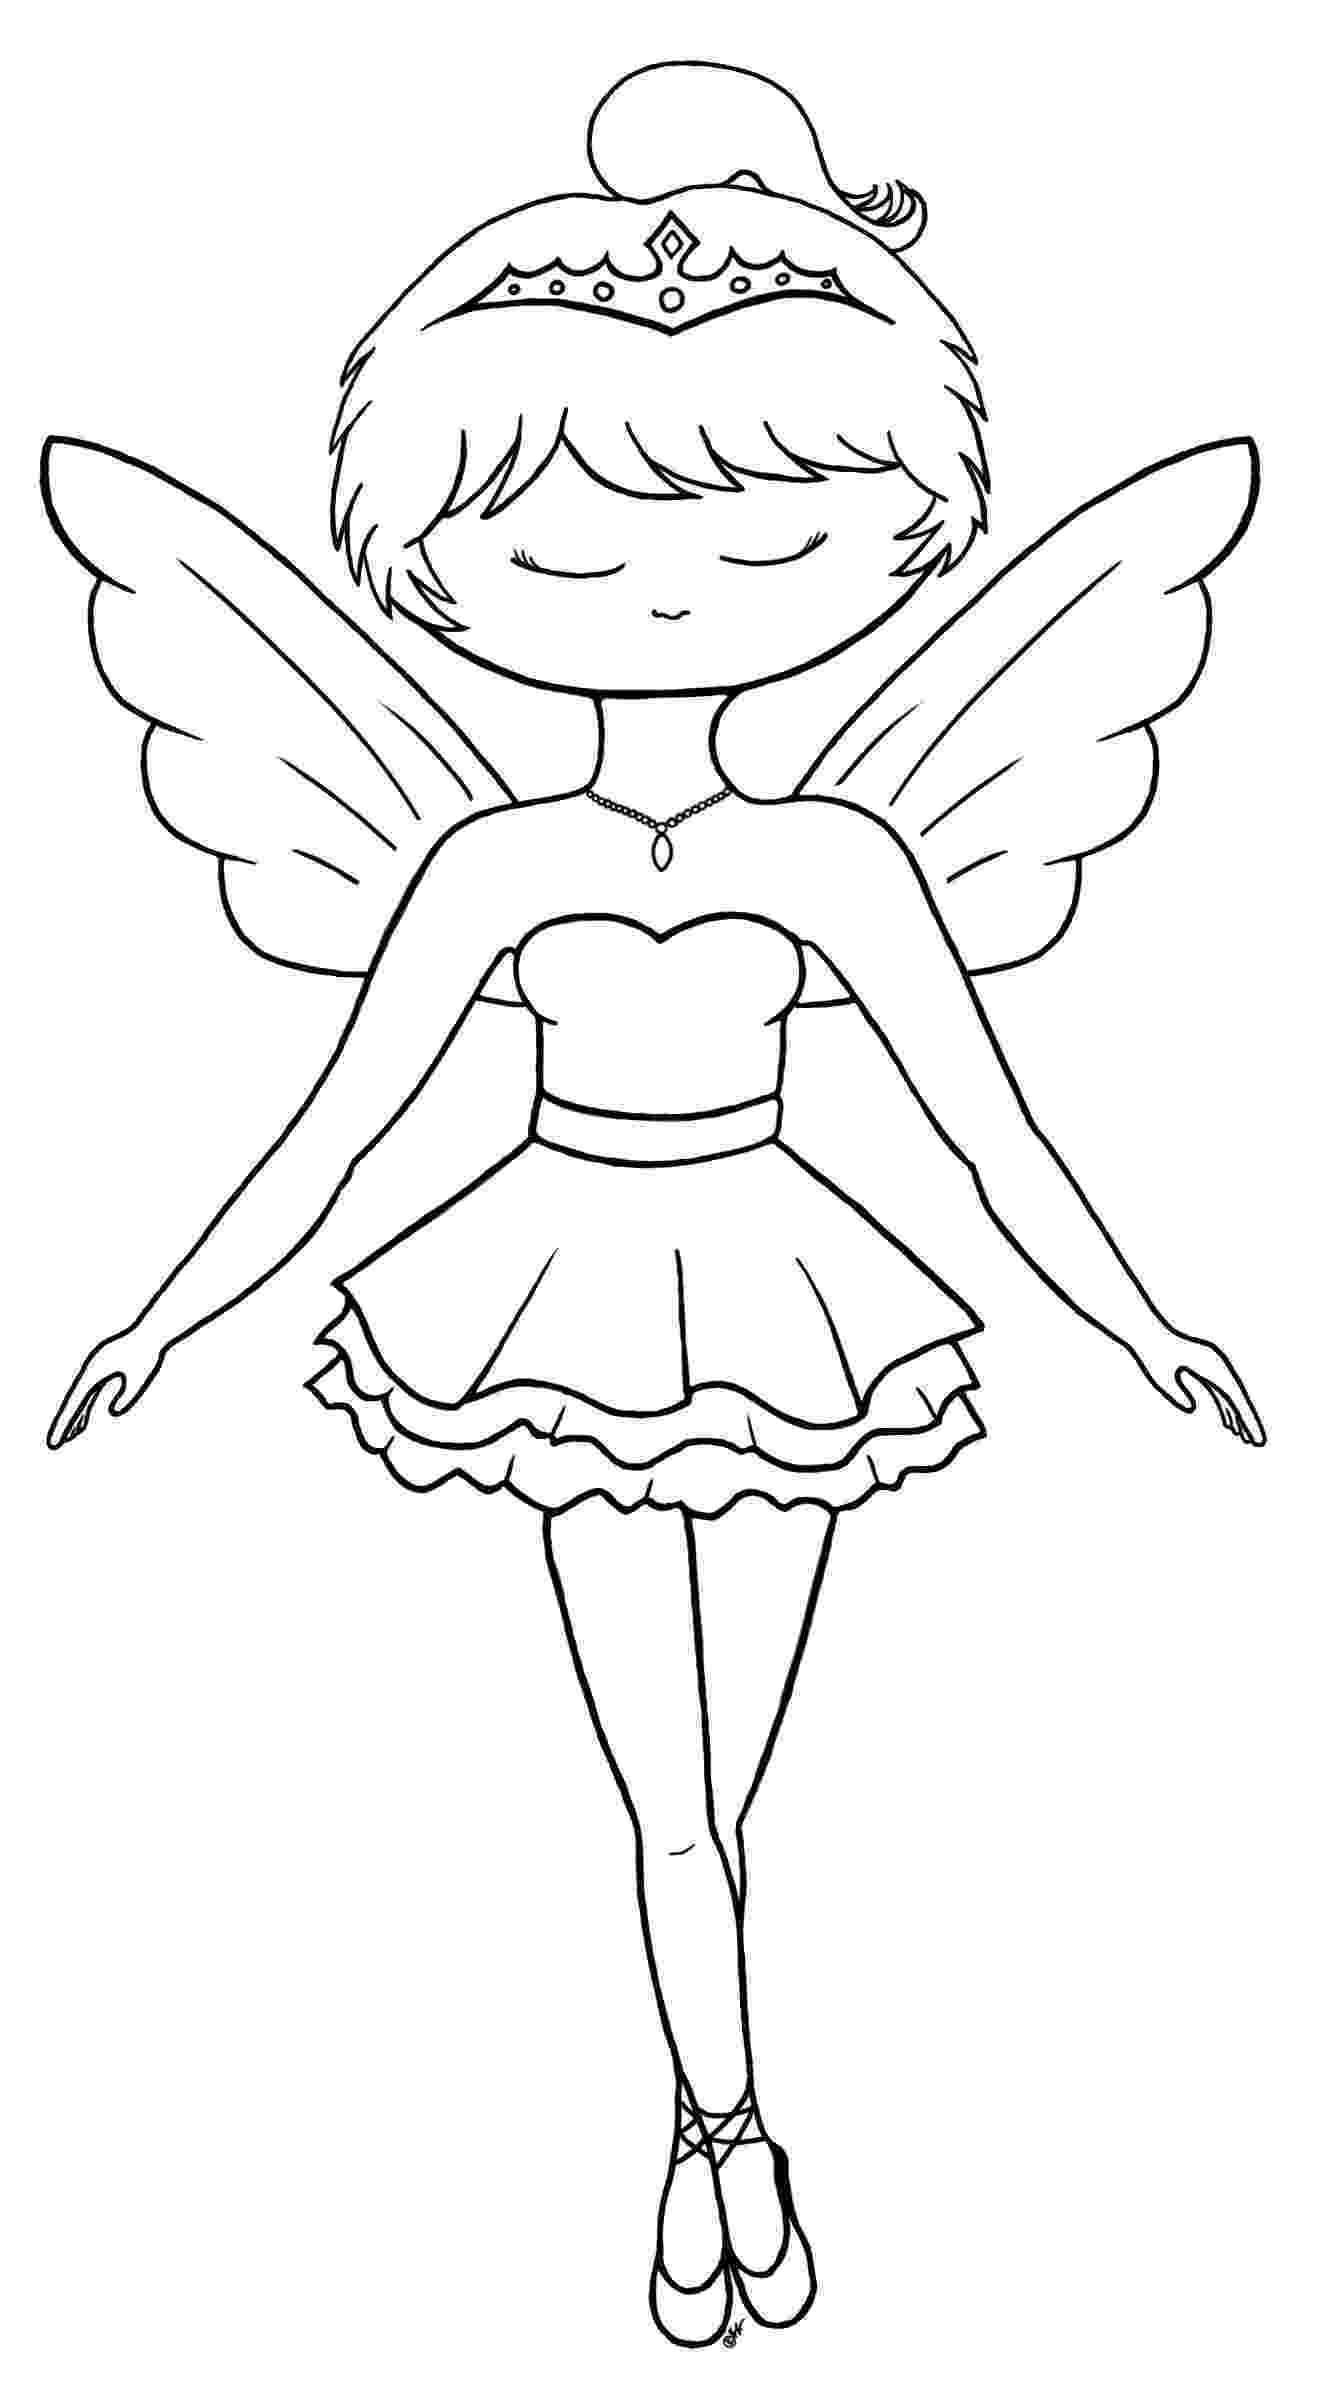 printable coloring pages ballerina 20 free printable ballerina coloring pages pages printable coloring ballerina